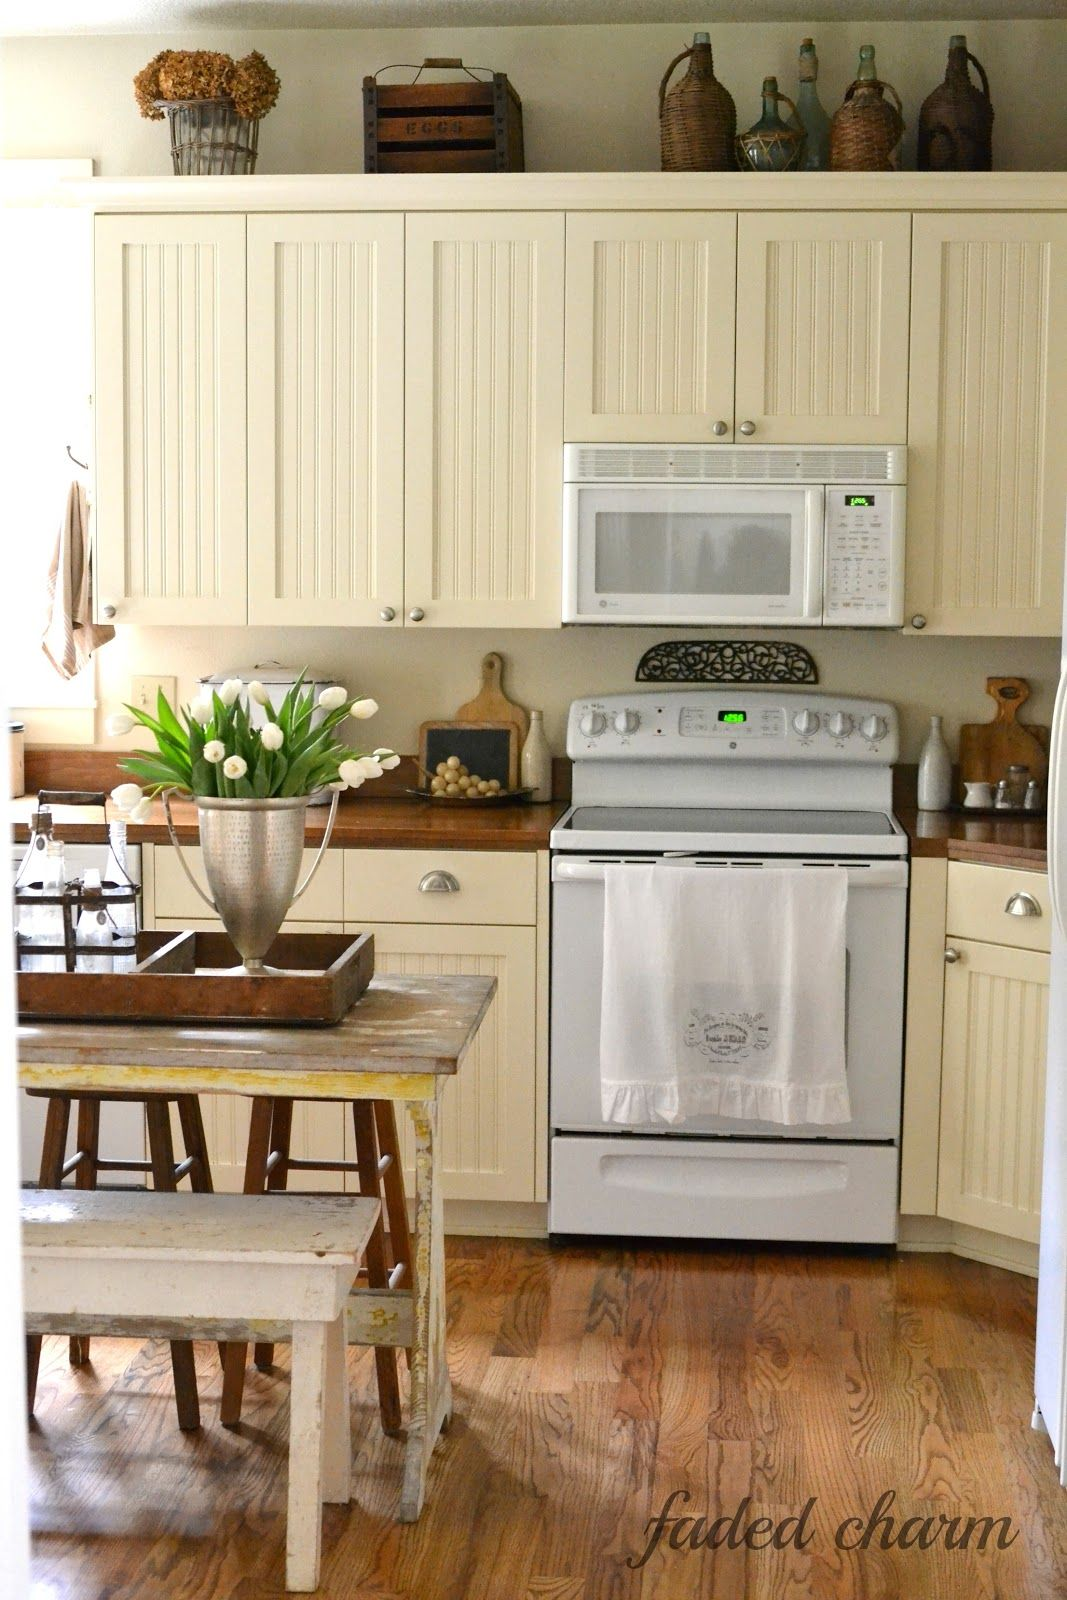 Faded charm love the beadboard cabinets do with green stove